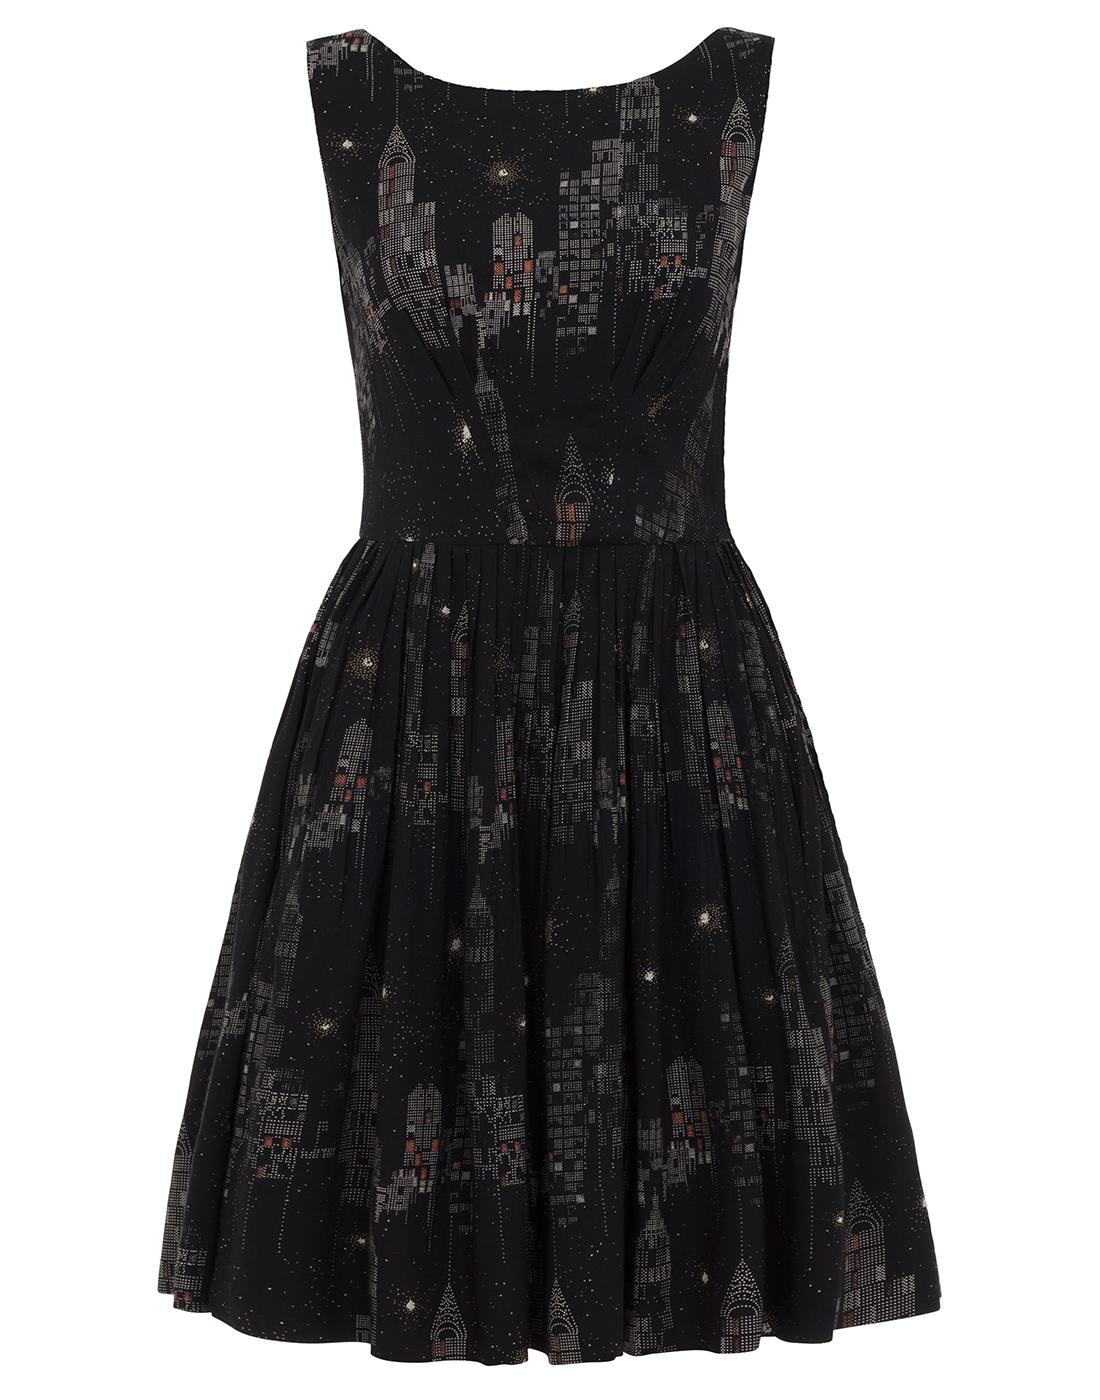 Abigail EMILY AND FIN New York City Lights Dress